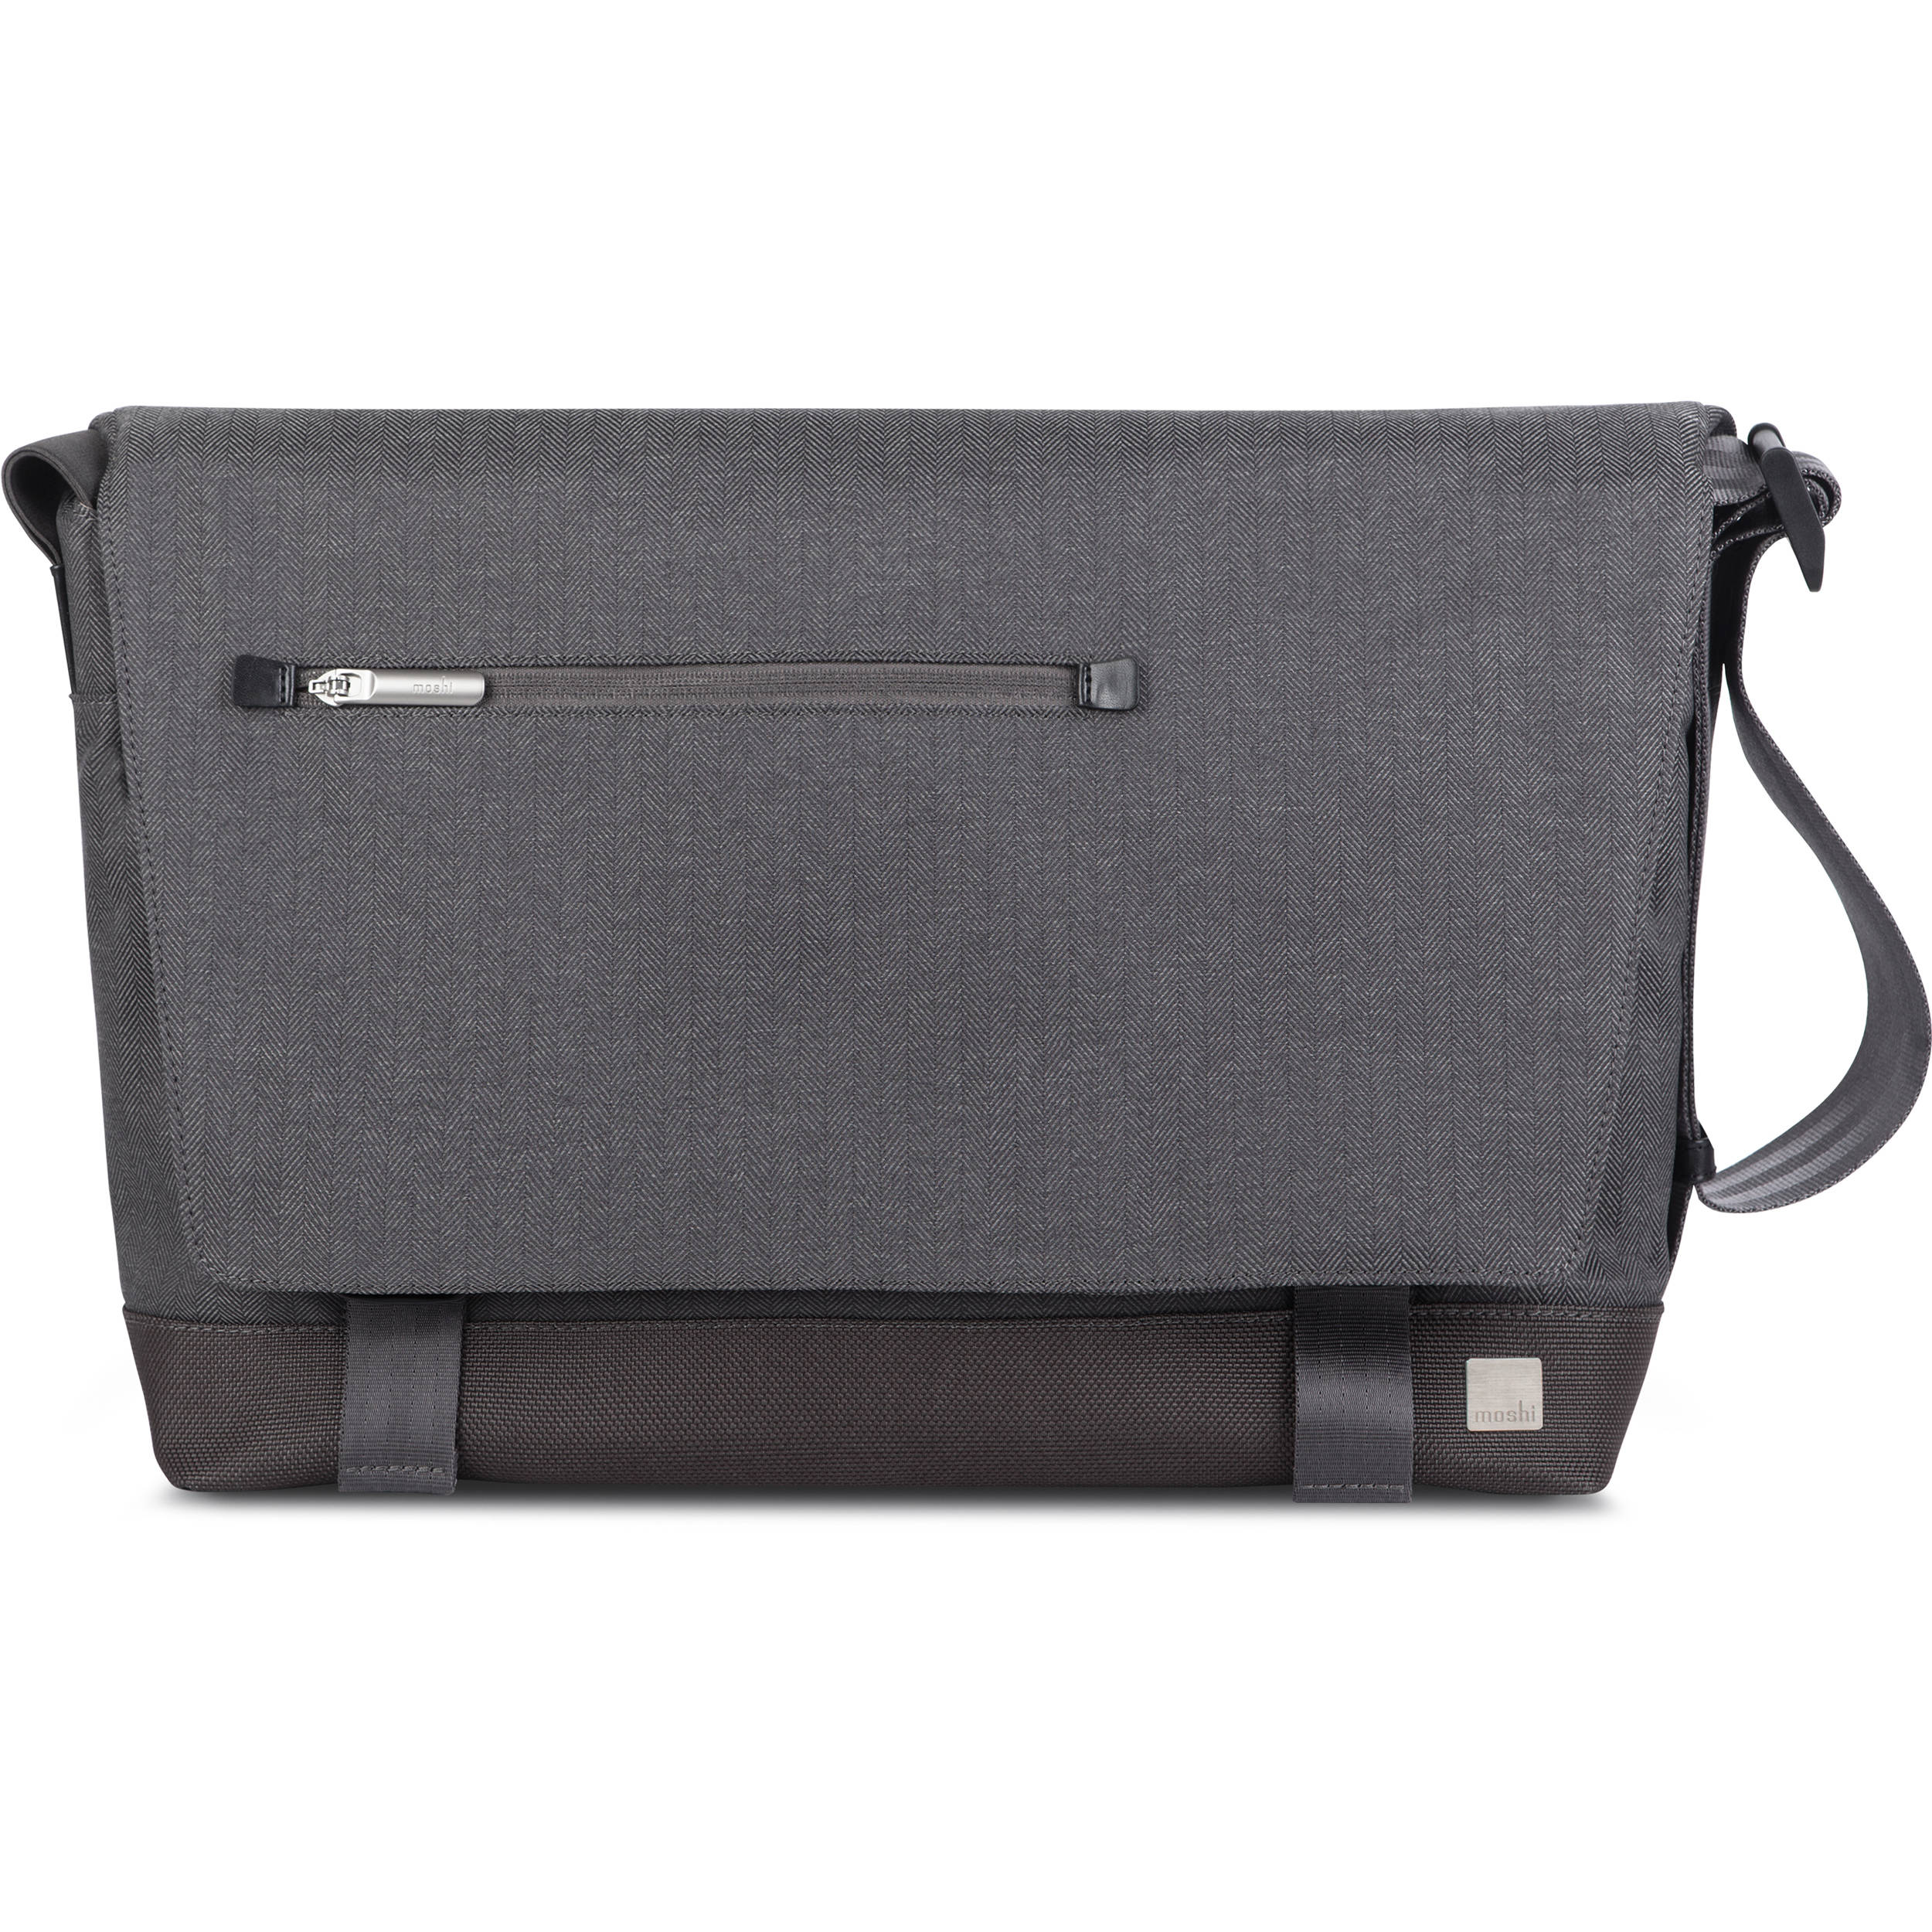 Moshi Aerio Messenger Bag for 15